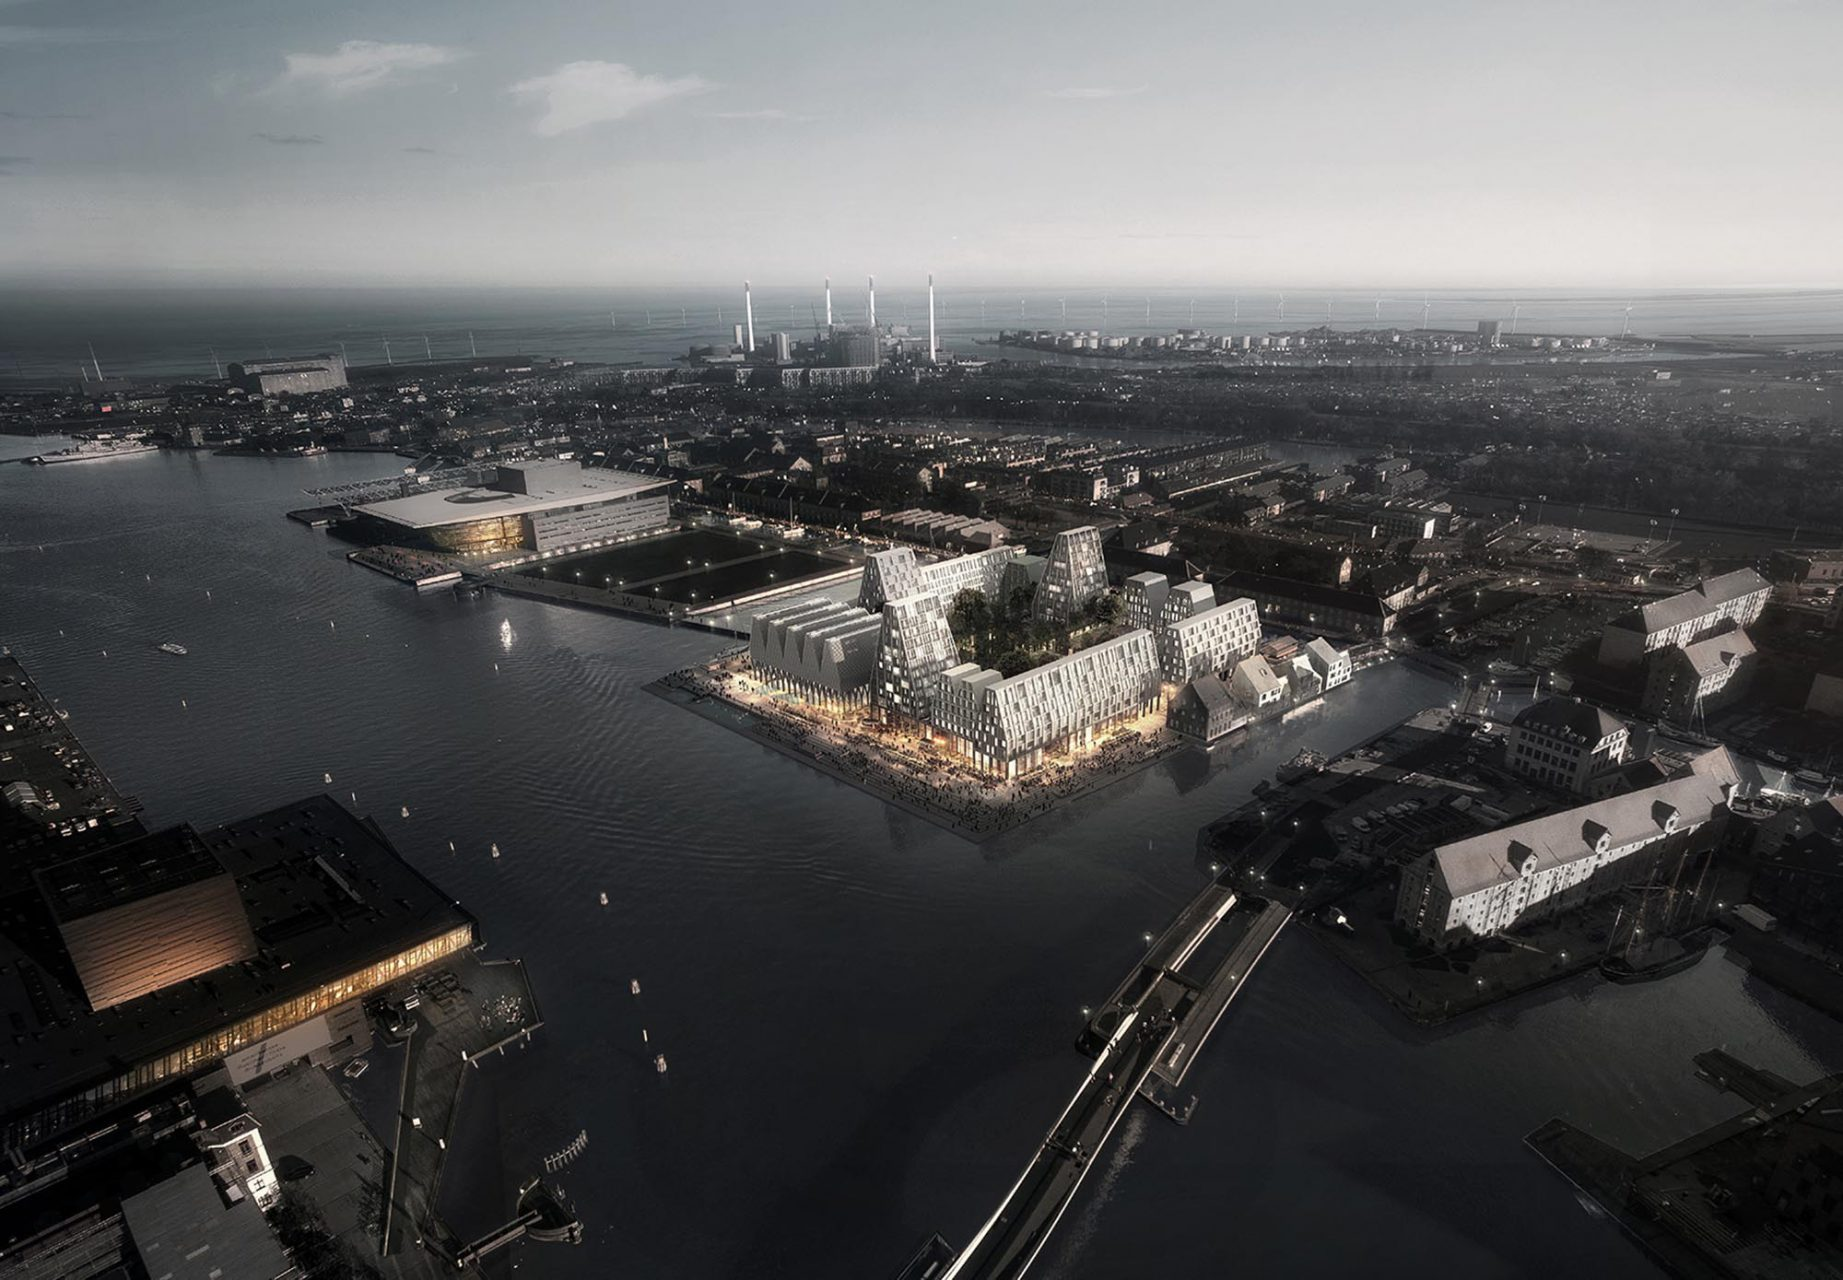 Christiansholm Future Paper Island. Masterplan for Christiansholm island. Christiansholm, also known as The Paper Island having stored huge rolls of newsprint for decades for the Danish press, is uniquely located in the heart of Copenhagen's waterfront. The vision for the project is to create a series of new halls for informal, public functions such as an event hall and a swimming hall. Private housing will be placed on top of the halls which encirles a green and intimate courtyard. The whole island will be flanked by a unifying public promenade.